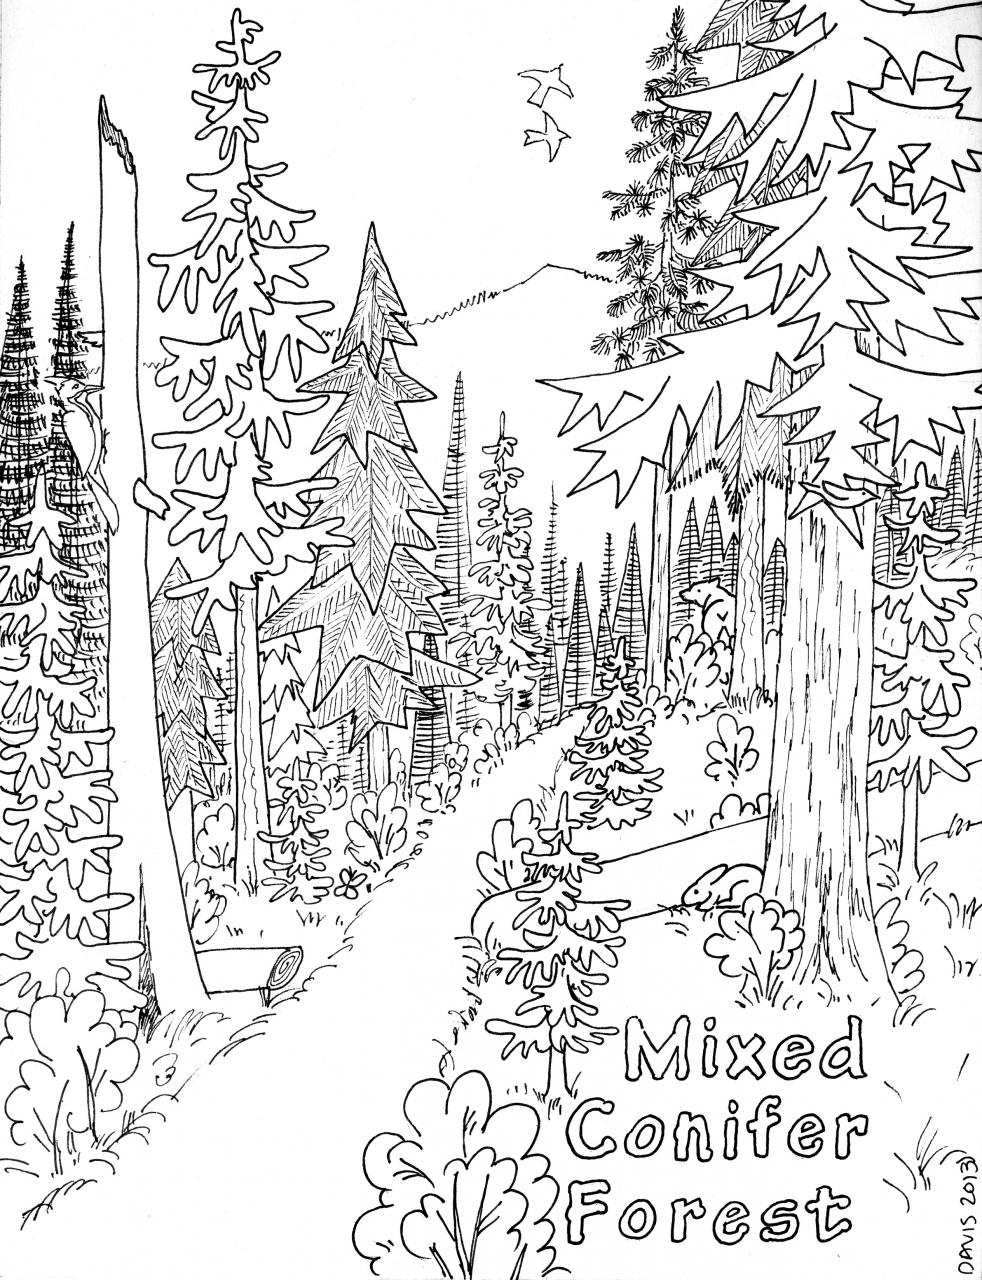 Coniferous Forest Coloring Page Coloring Page For Kids | Kids Coloring